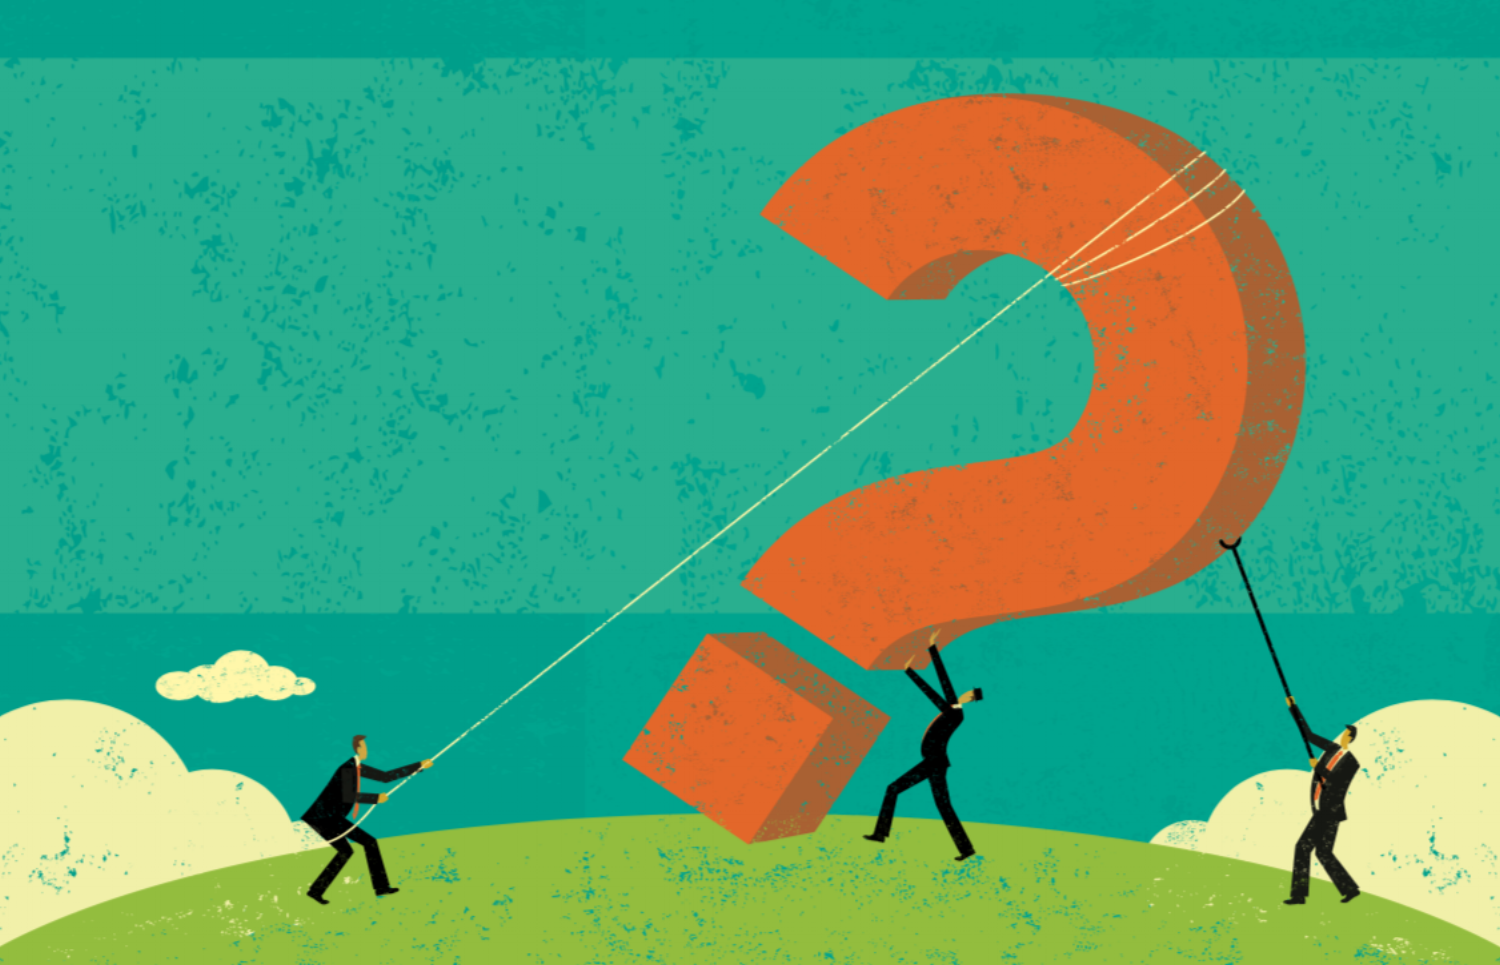 Questions Businesses Should Ask Their Customers